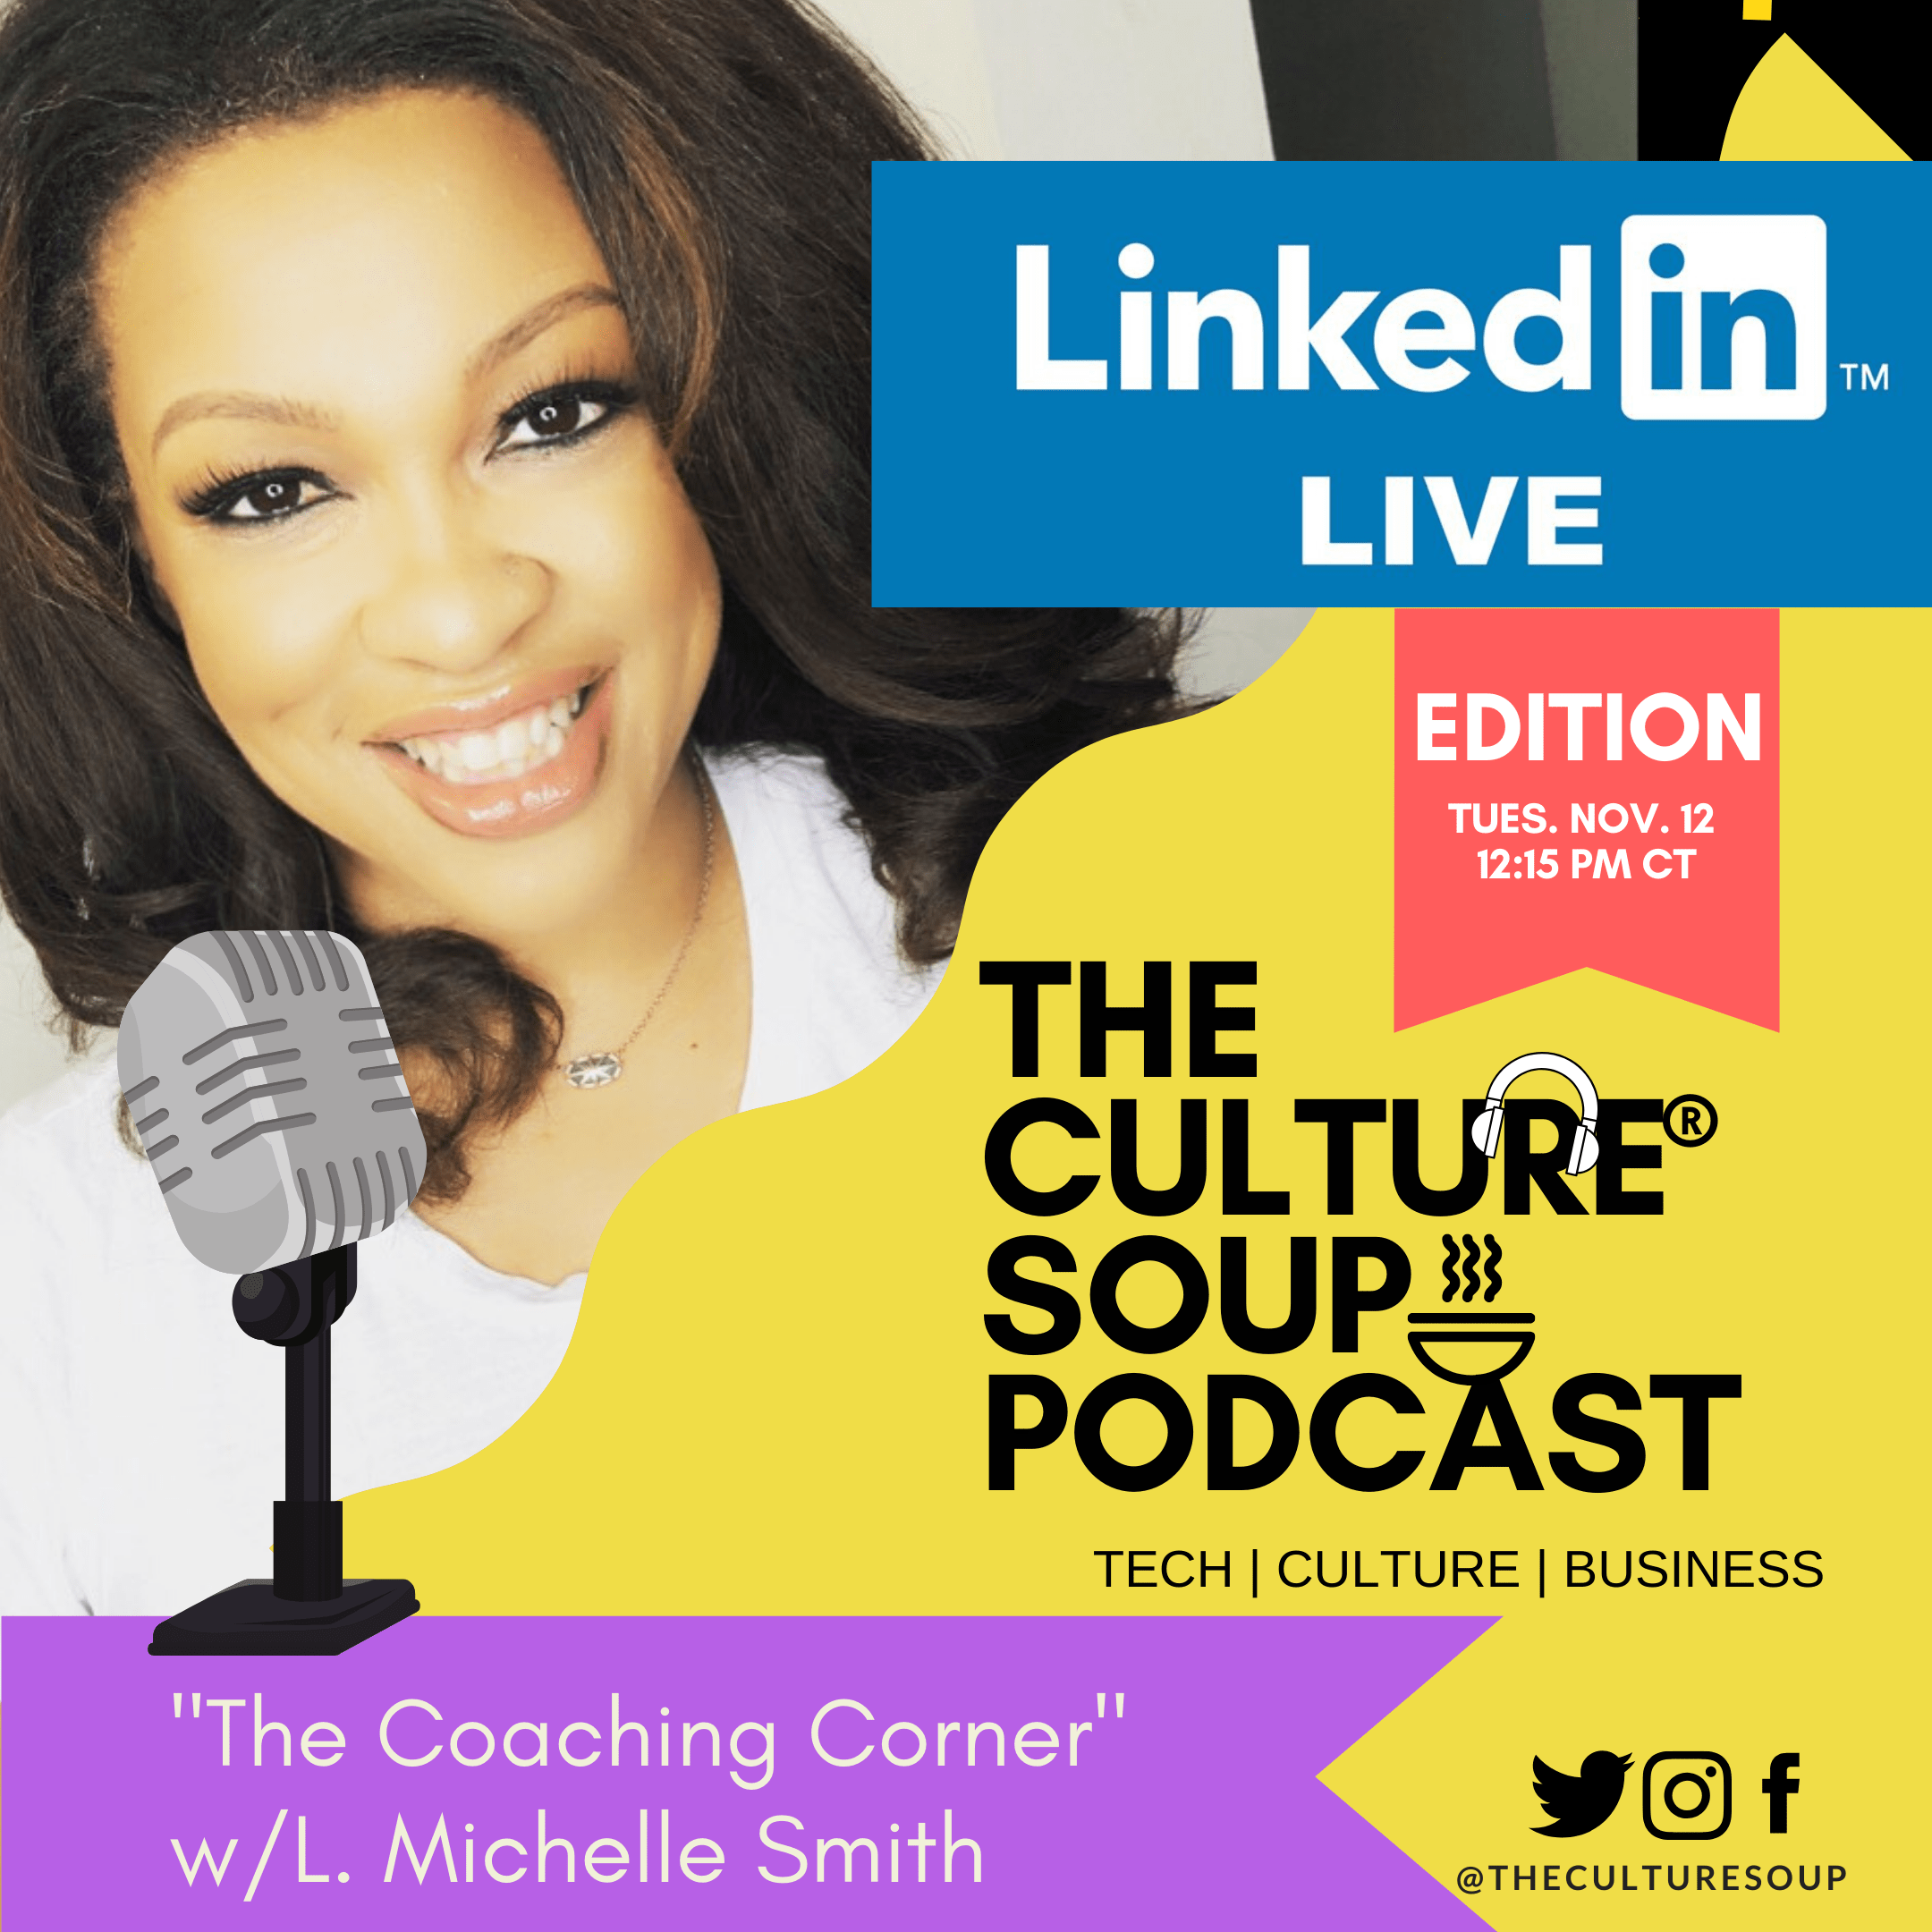 EP 68: The Coaching Corner on #LinkedInLIVE: TRANSITIONS with Tristan Layfield